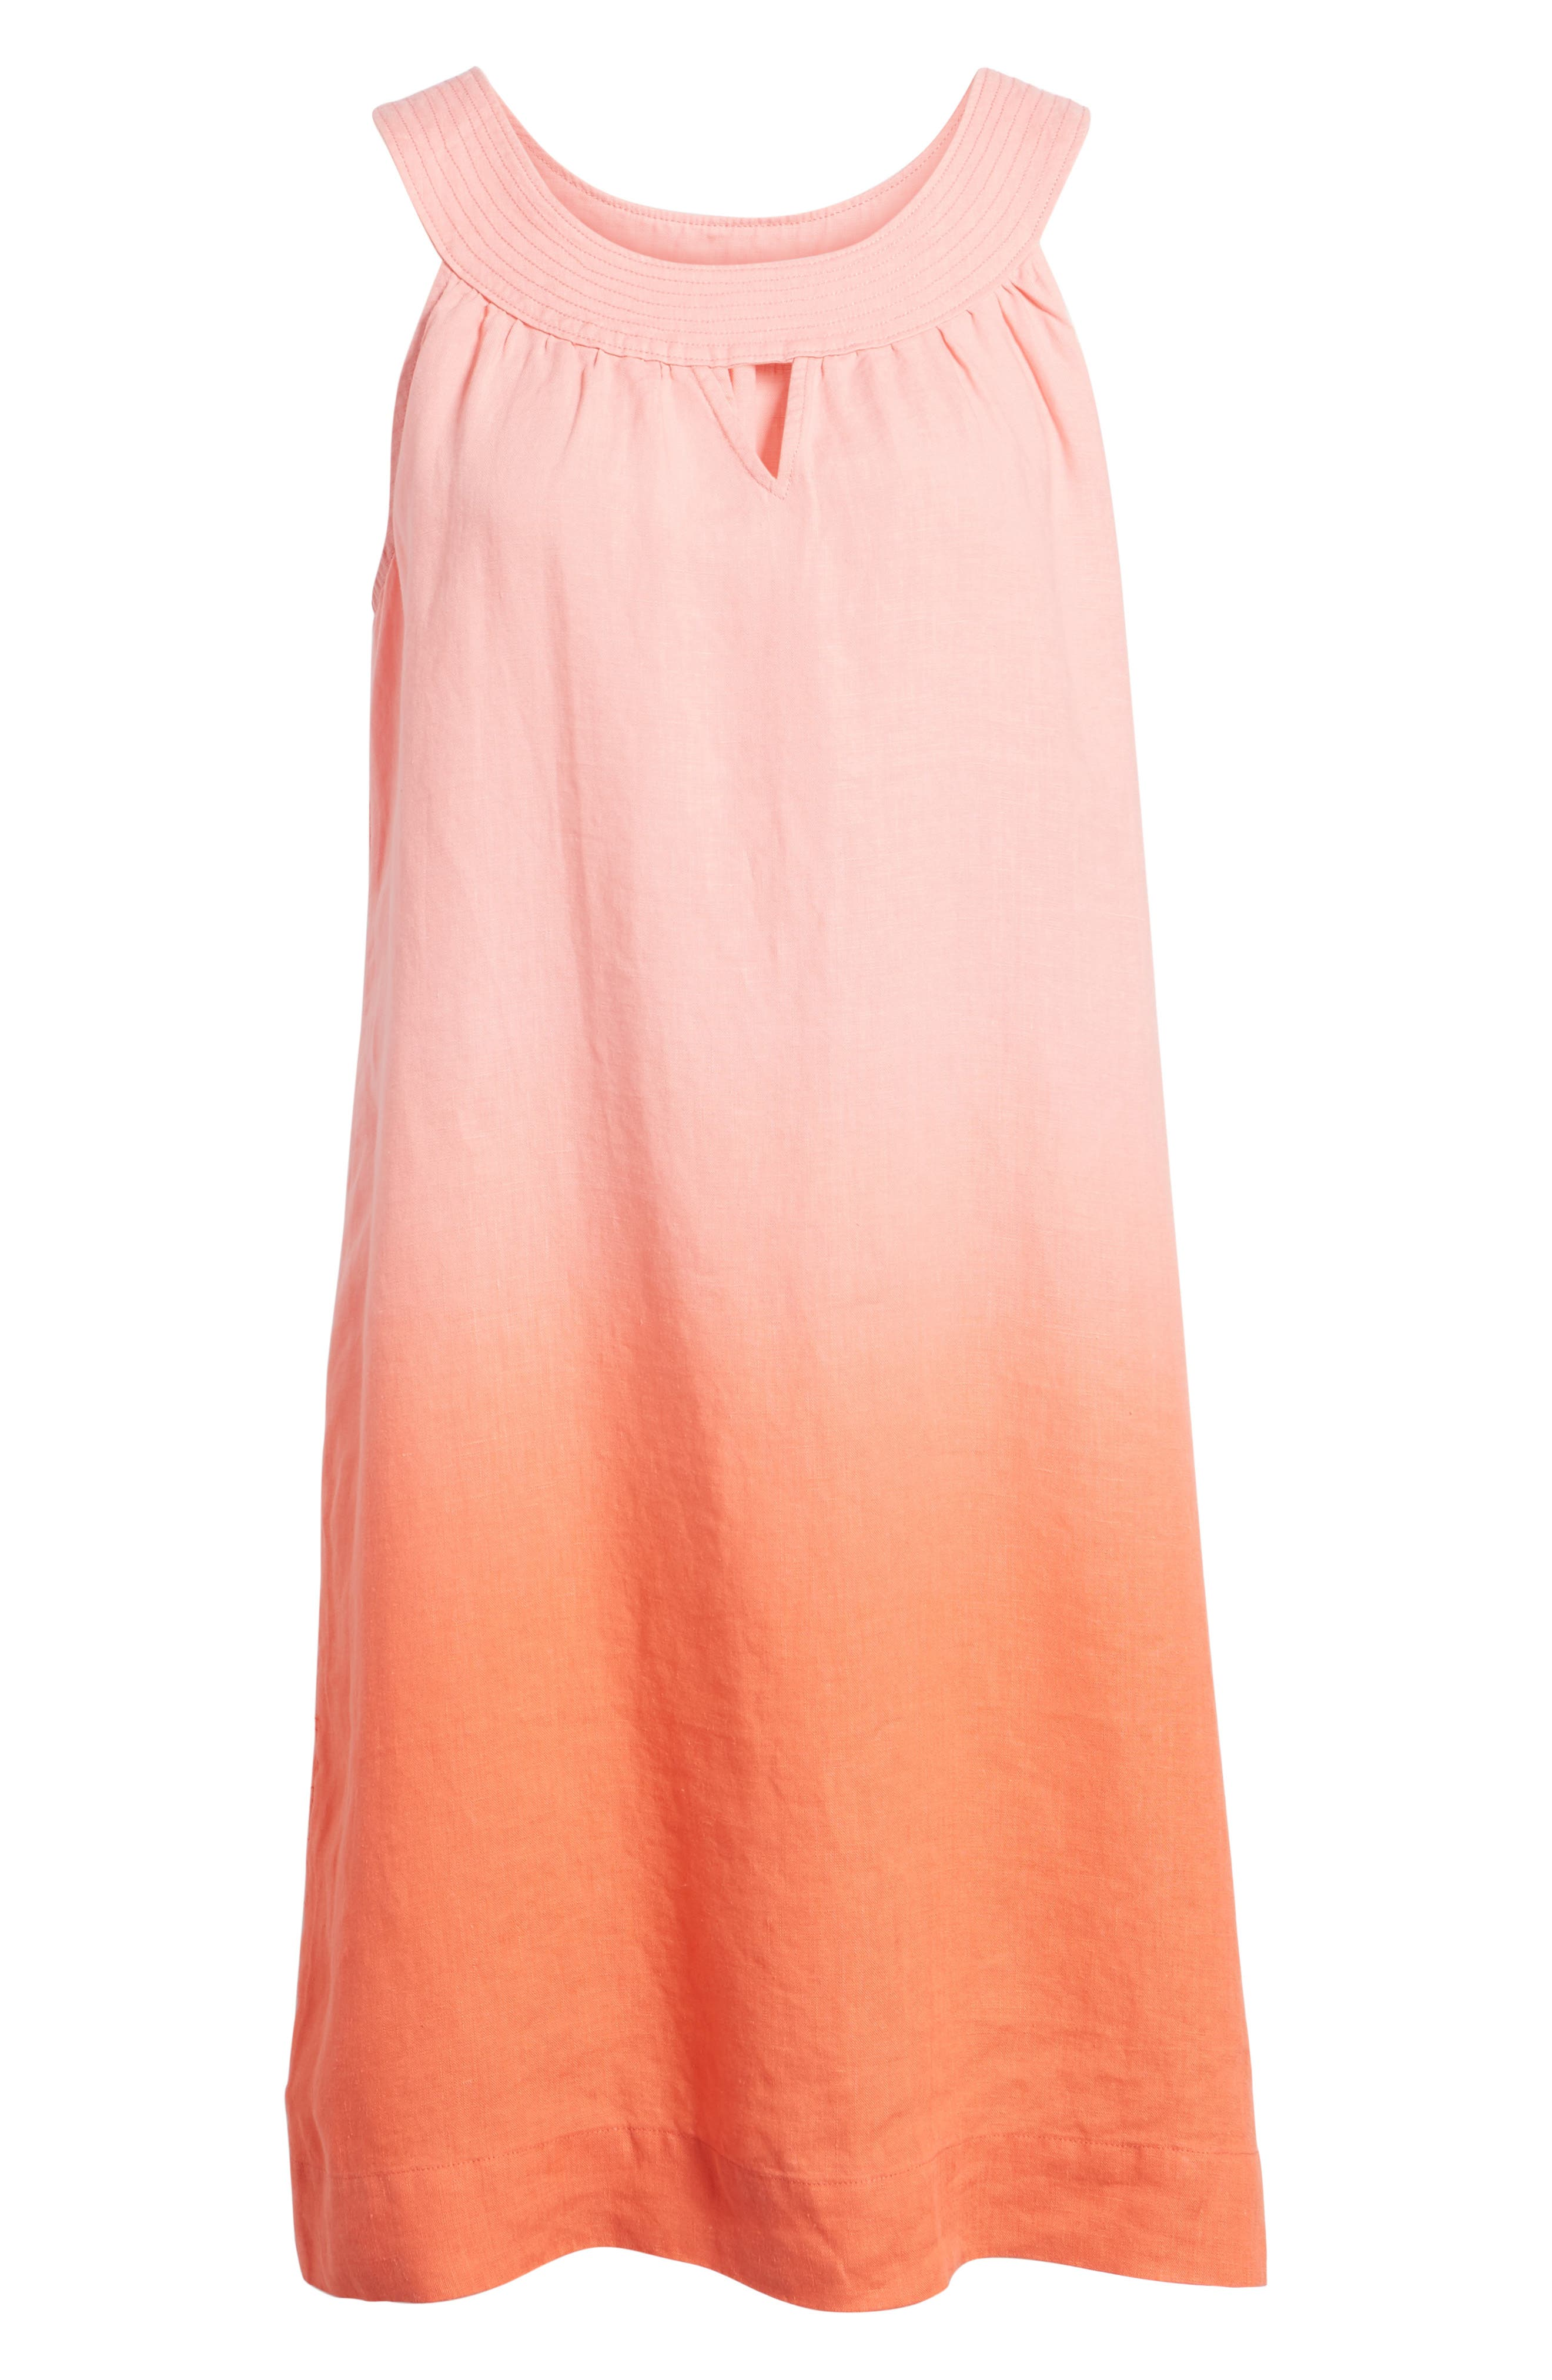 Two Palms Short Sundress,                             Alternate thumbnail 6, color,                             CABANA PINK/ BURNT CORAL